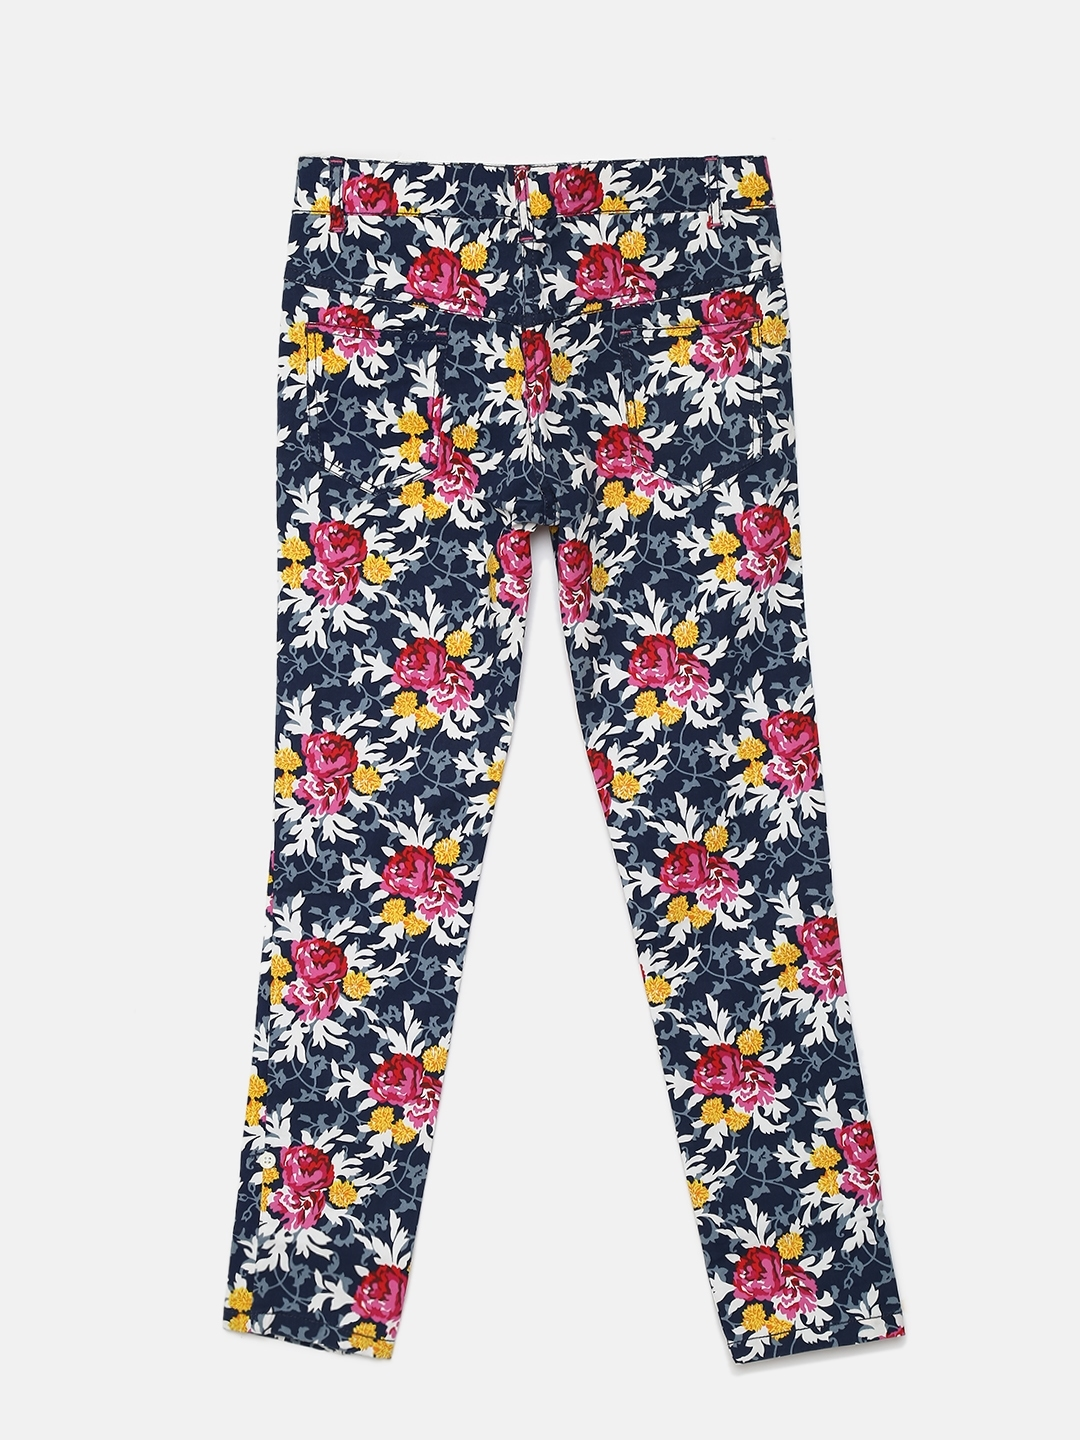 3fccaba2f Buy 612 League Girls Navy Blue Floral Print Trousers - Trousers for ...